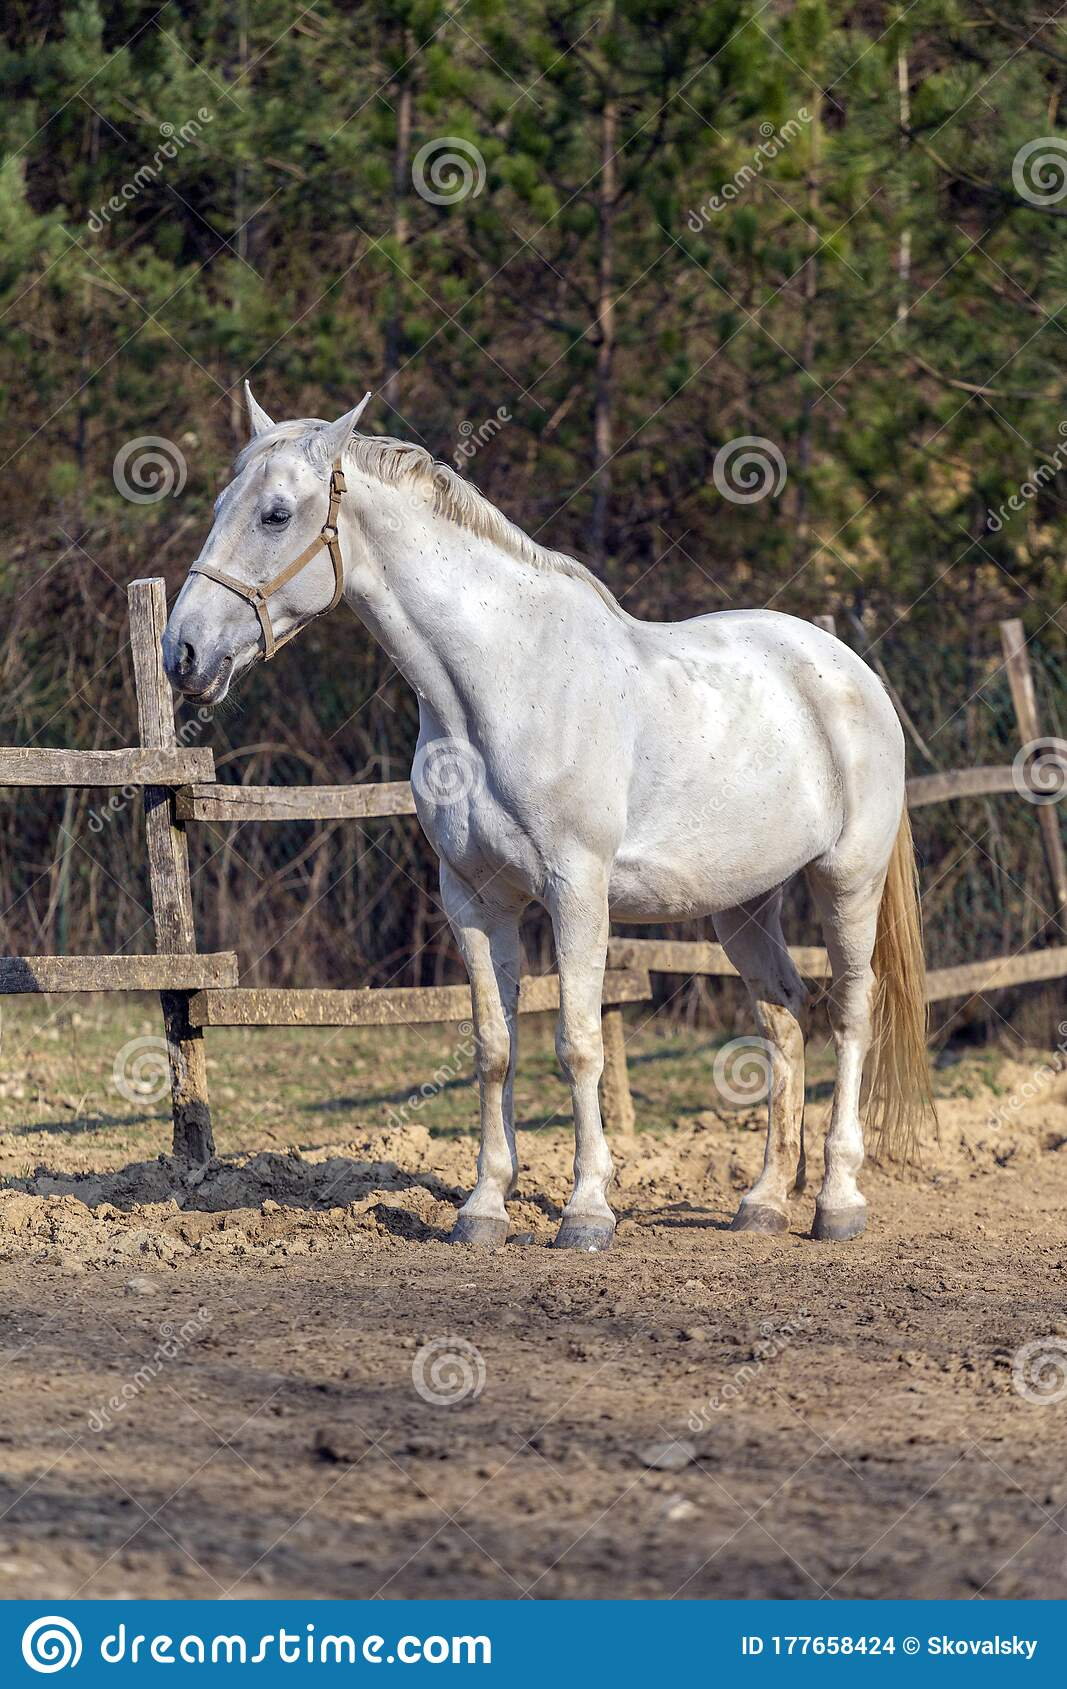 White Horse In A Horse Farm Stock Photo Image Of Equine Arab 177658424